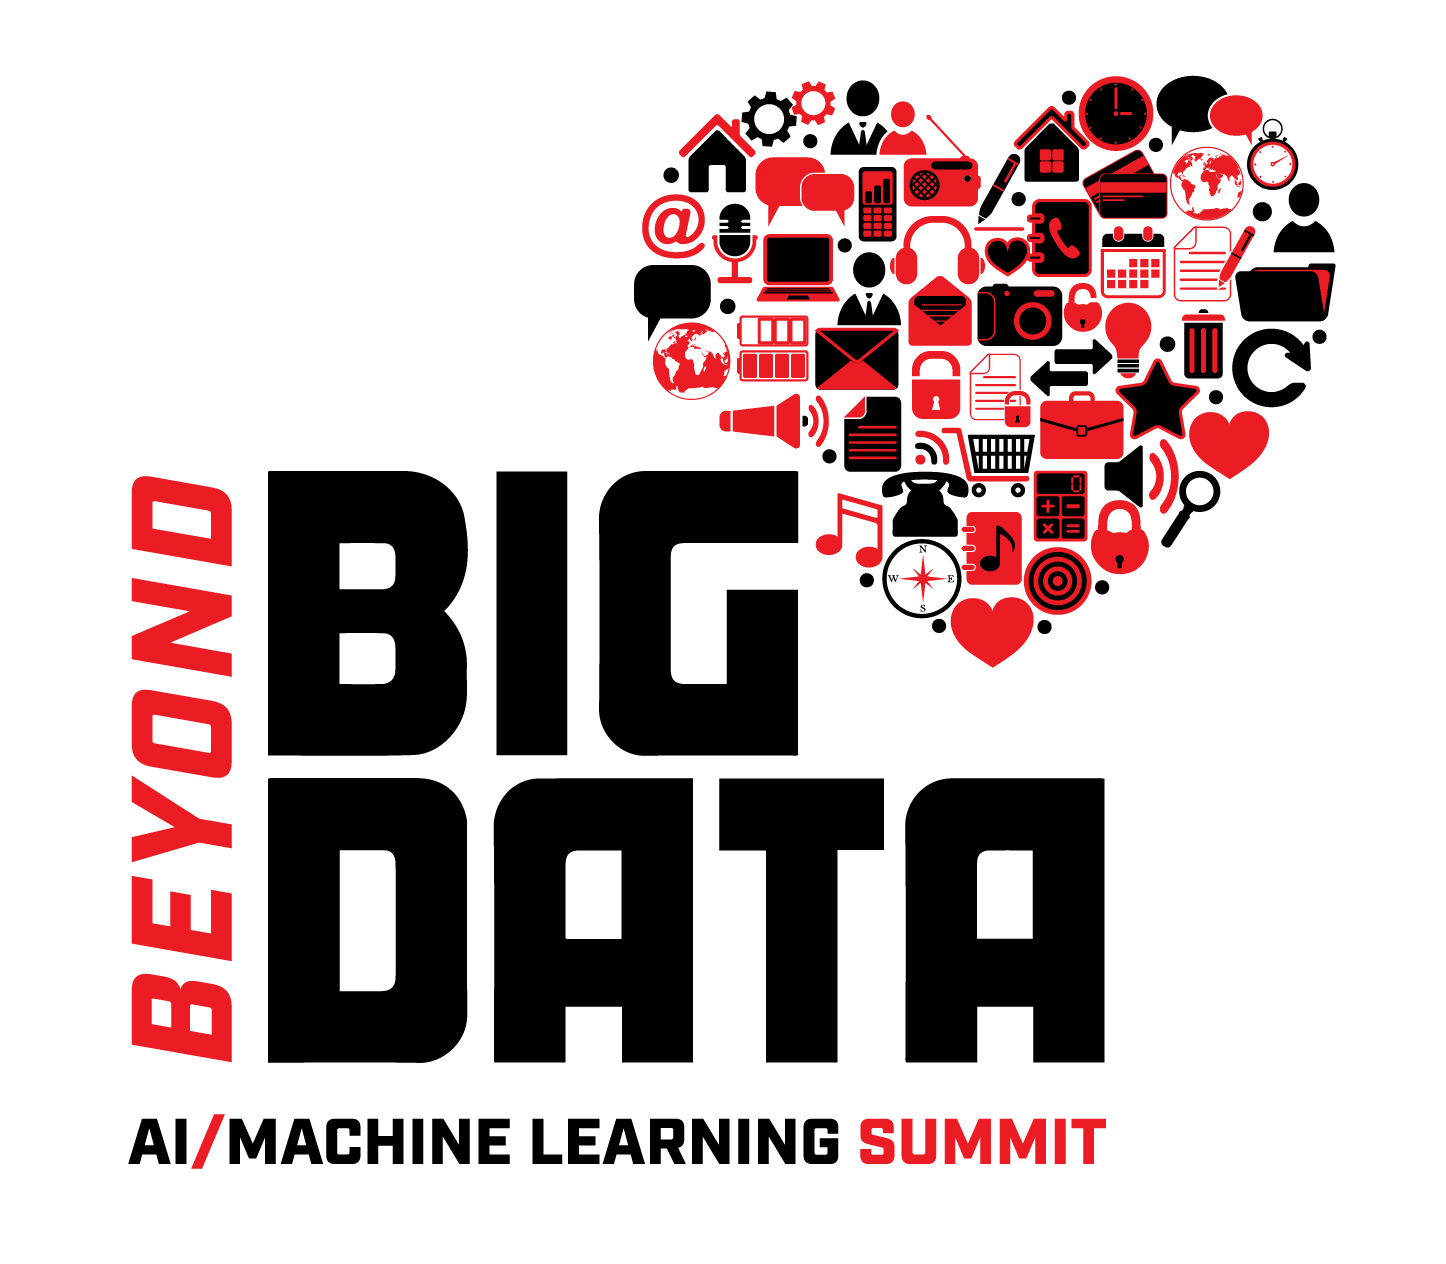 Beyond Big Data: AI/Machine Learning Summit